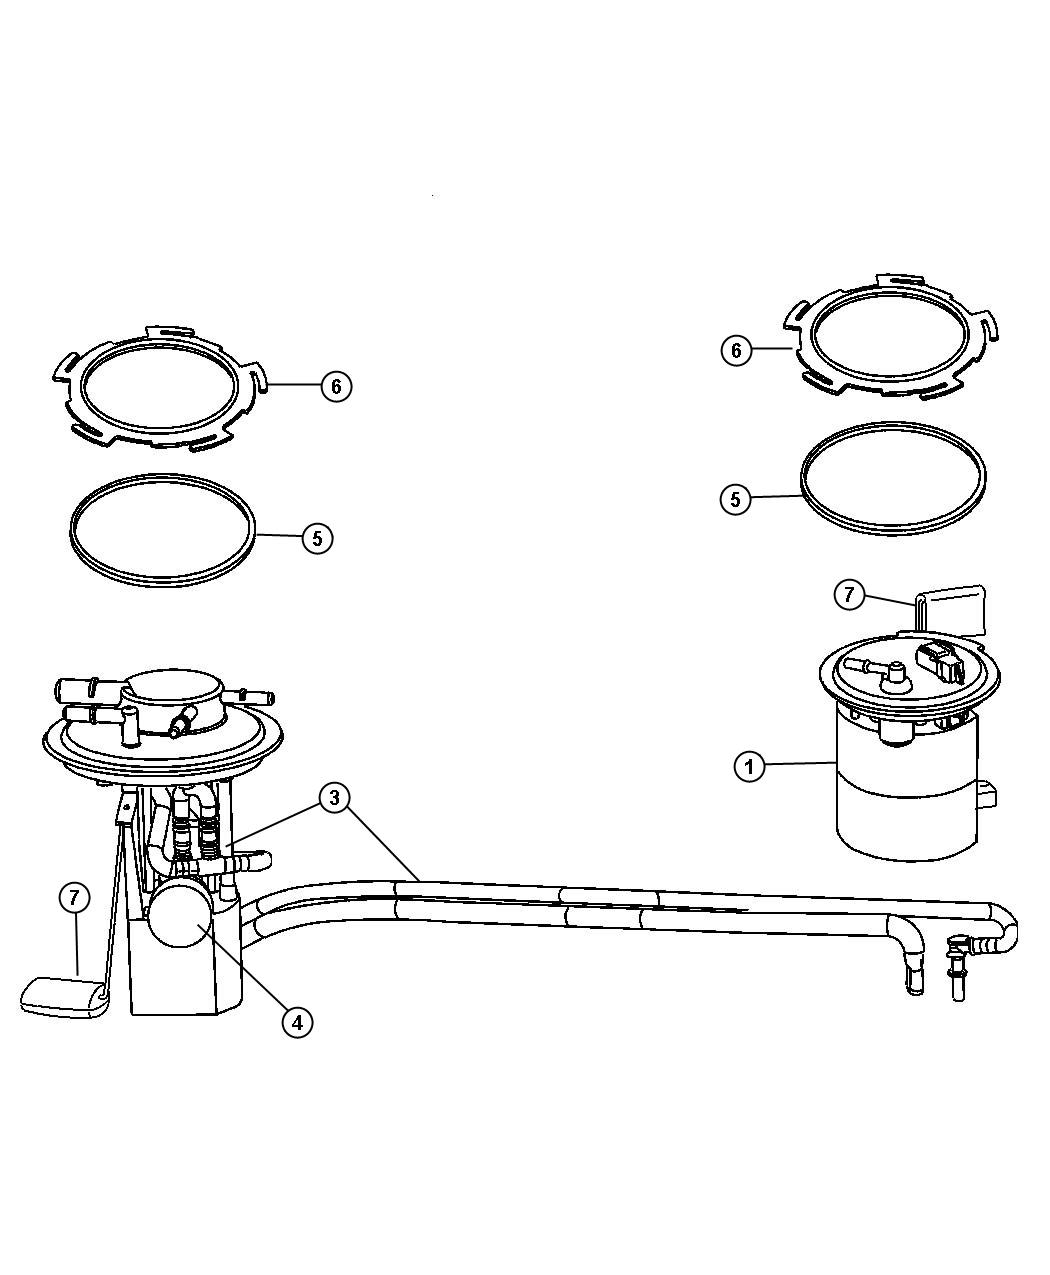 Chrysler Pacifica Flange Kit  Primary Fuel Module